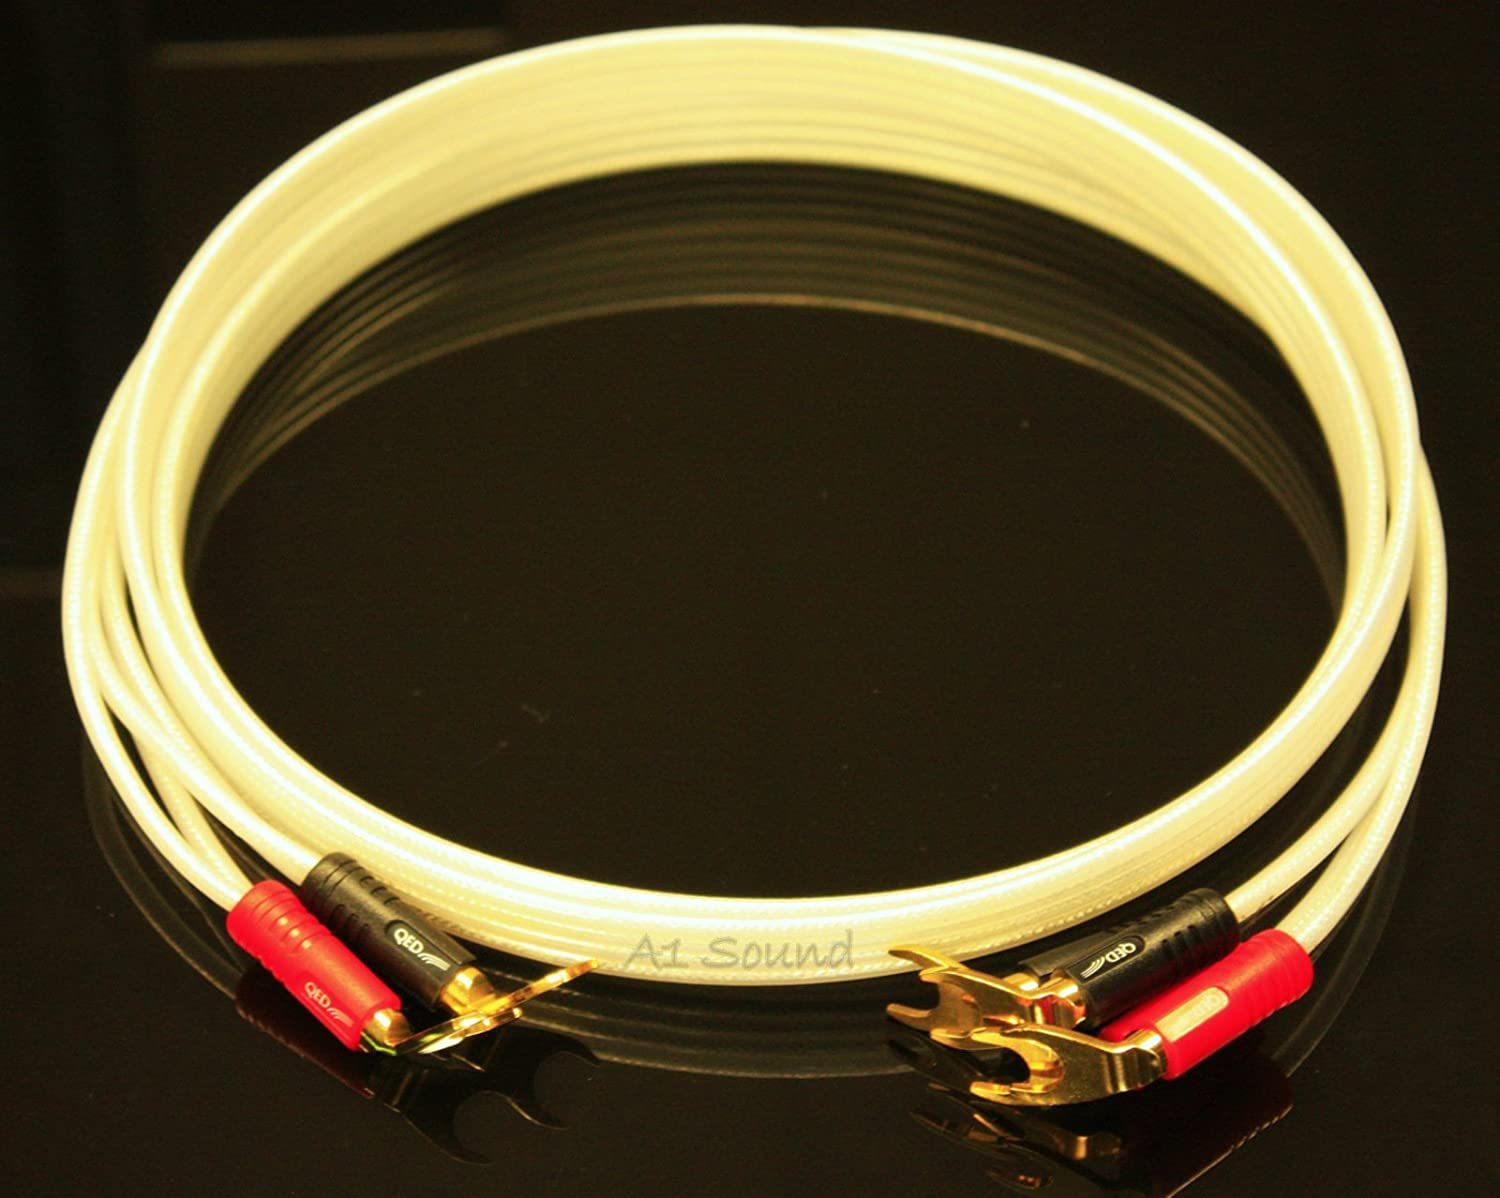 QED Reference Silver Anniversary XT Bi-Wire Speaker Cable 4 Metre Single Length Terminated With Airloc Forte Plugs 2 x 4mm Amplifier End to 4 x 4mm Speaker End